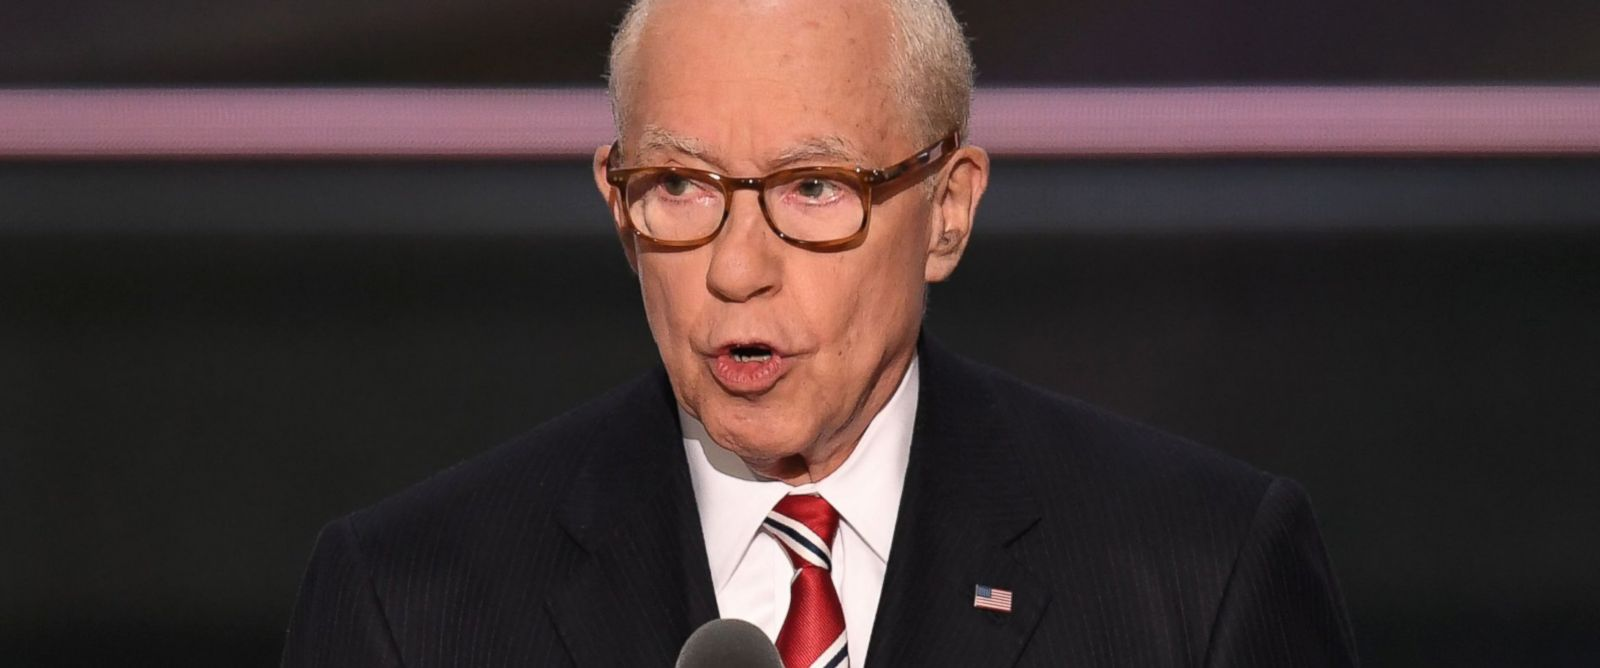 PHOTO: Former Attorney General Michael B. Mukasey speaks during the second day of the Republican National Convention at the Quicken Loans Arena in Cleveland, July 19, 2016.